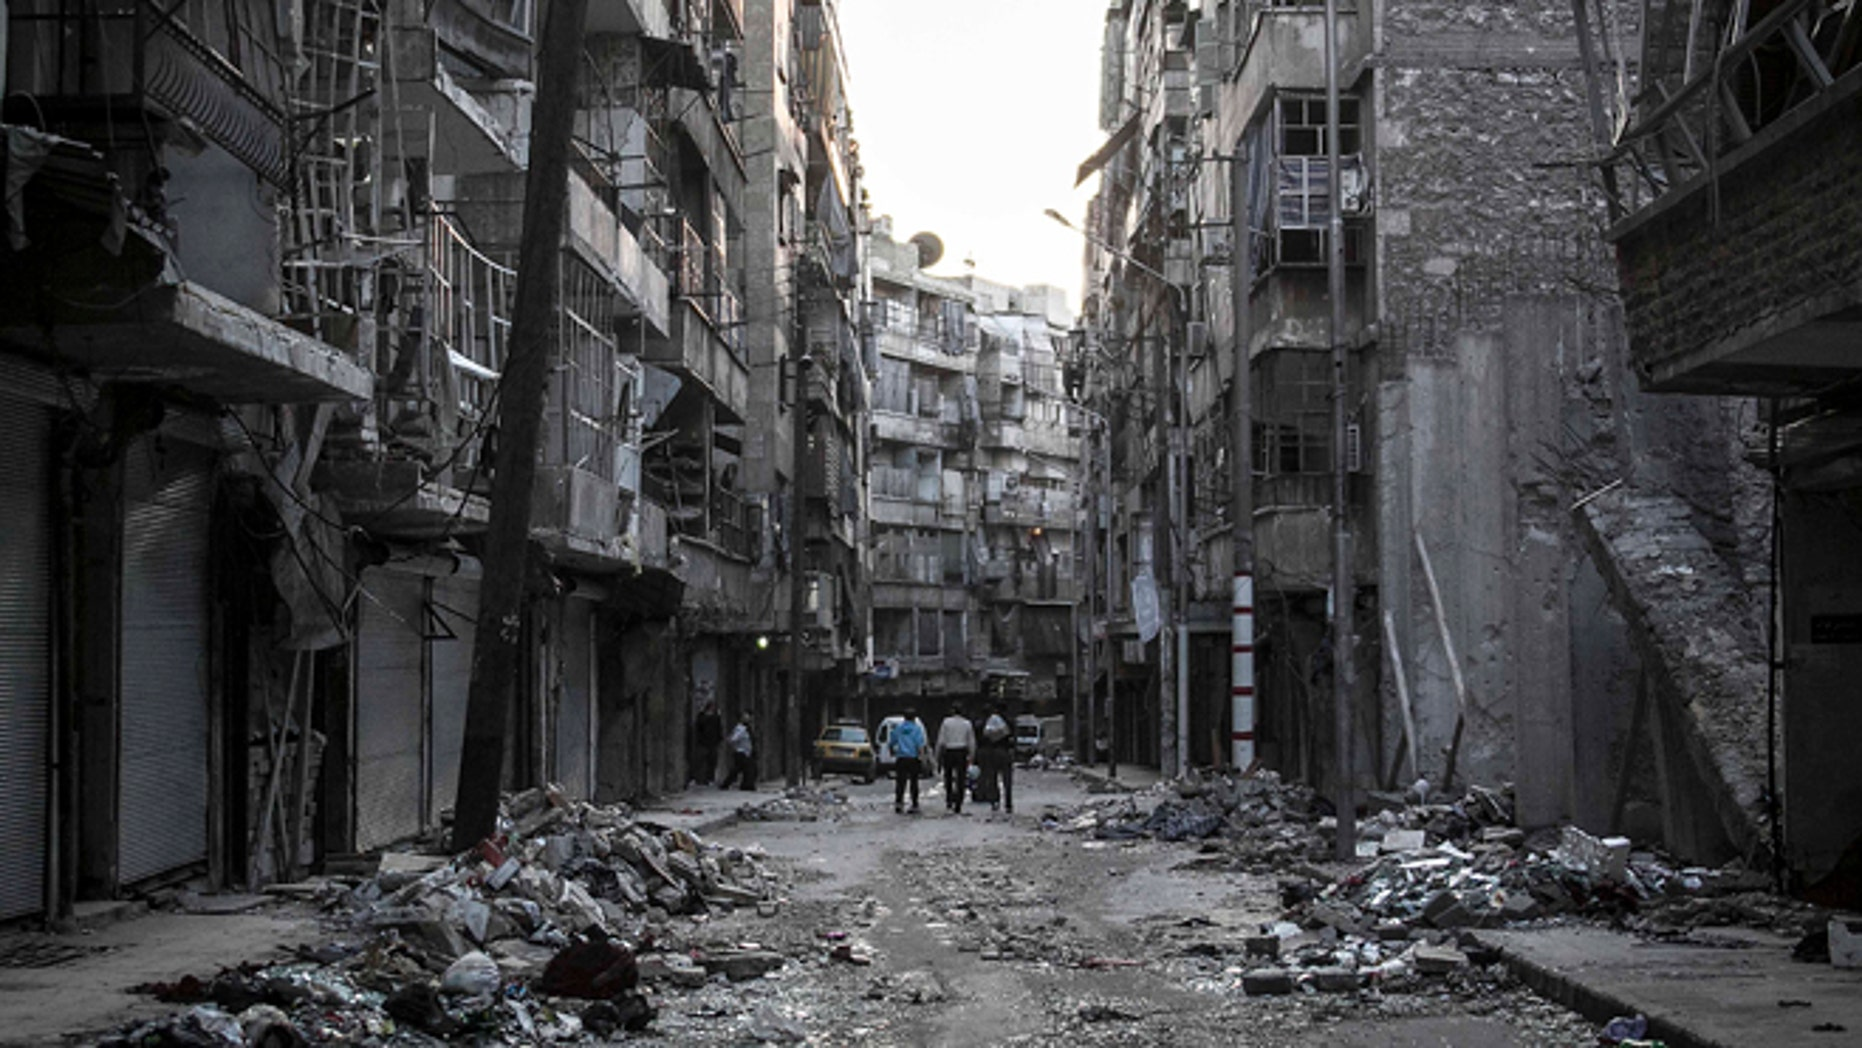 Oct. 27, 2012: In this photo, Syrian residents walk on a street among the debris of buildings damaged by heavy shelling in the southeast of Aleppo City.